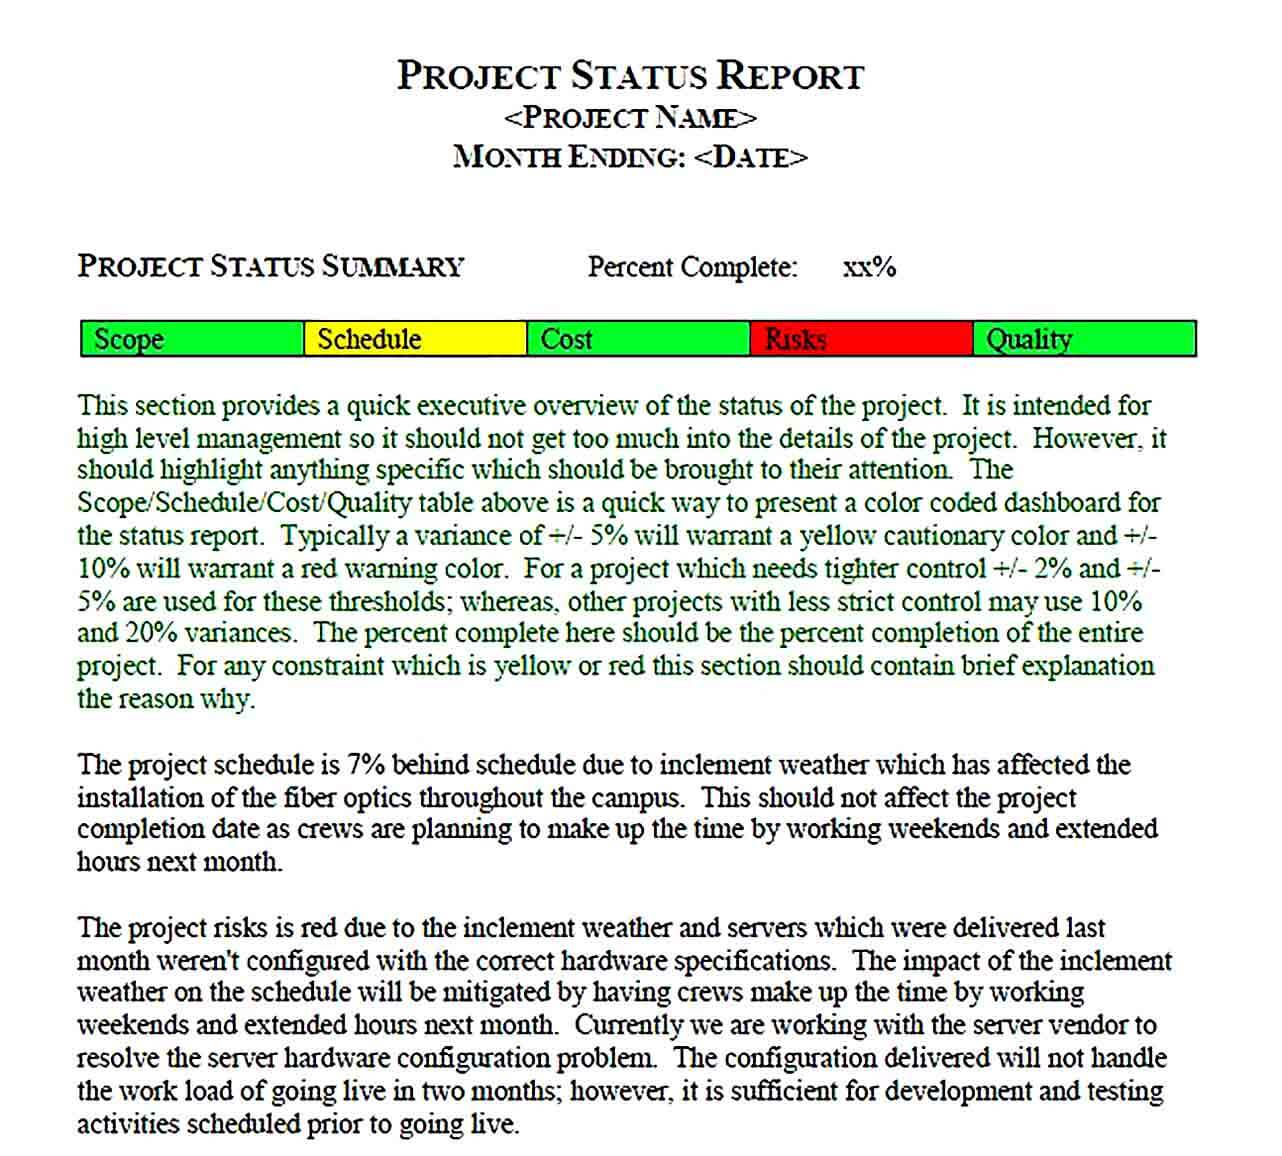 Sample Project Status Report PDF Format Template 1